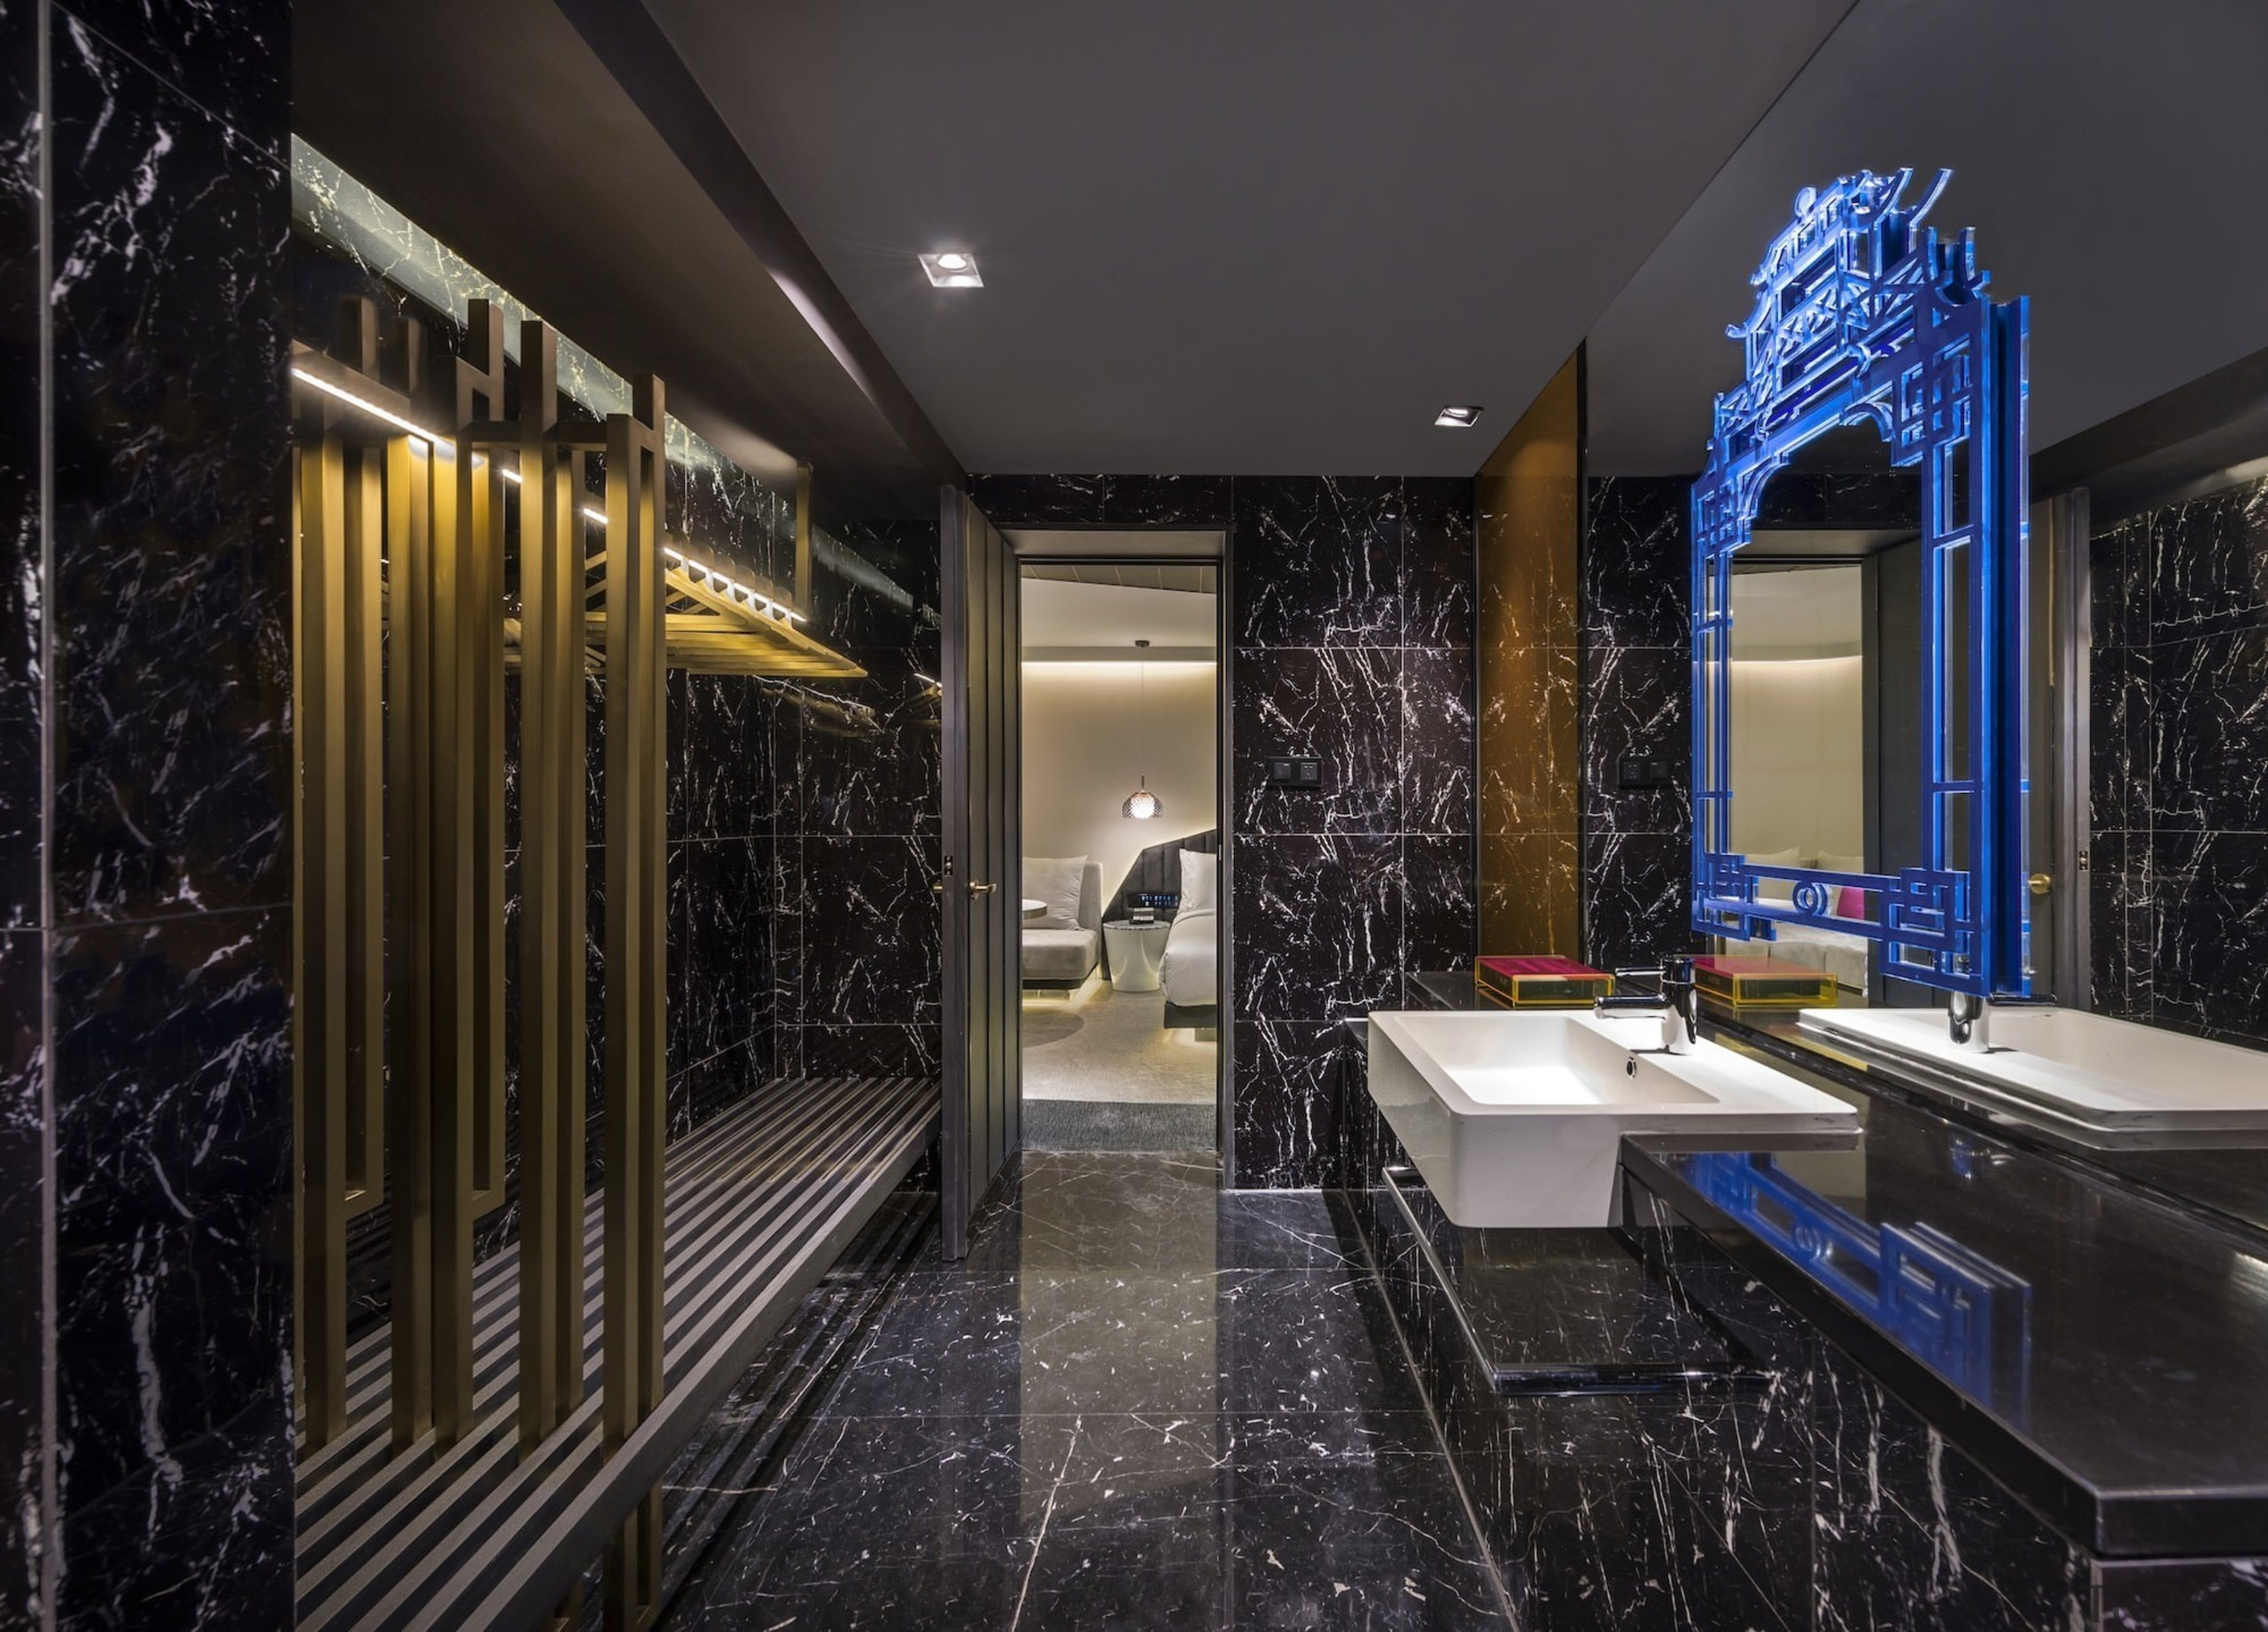 A blue frame mirror draws the eye - architecture, ceiling, home, interior design, lighting, lobby, real estate, black